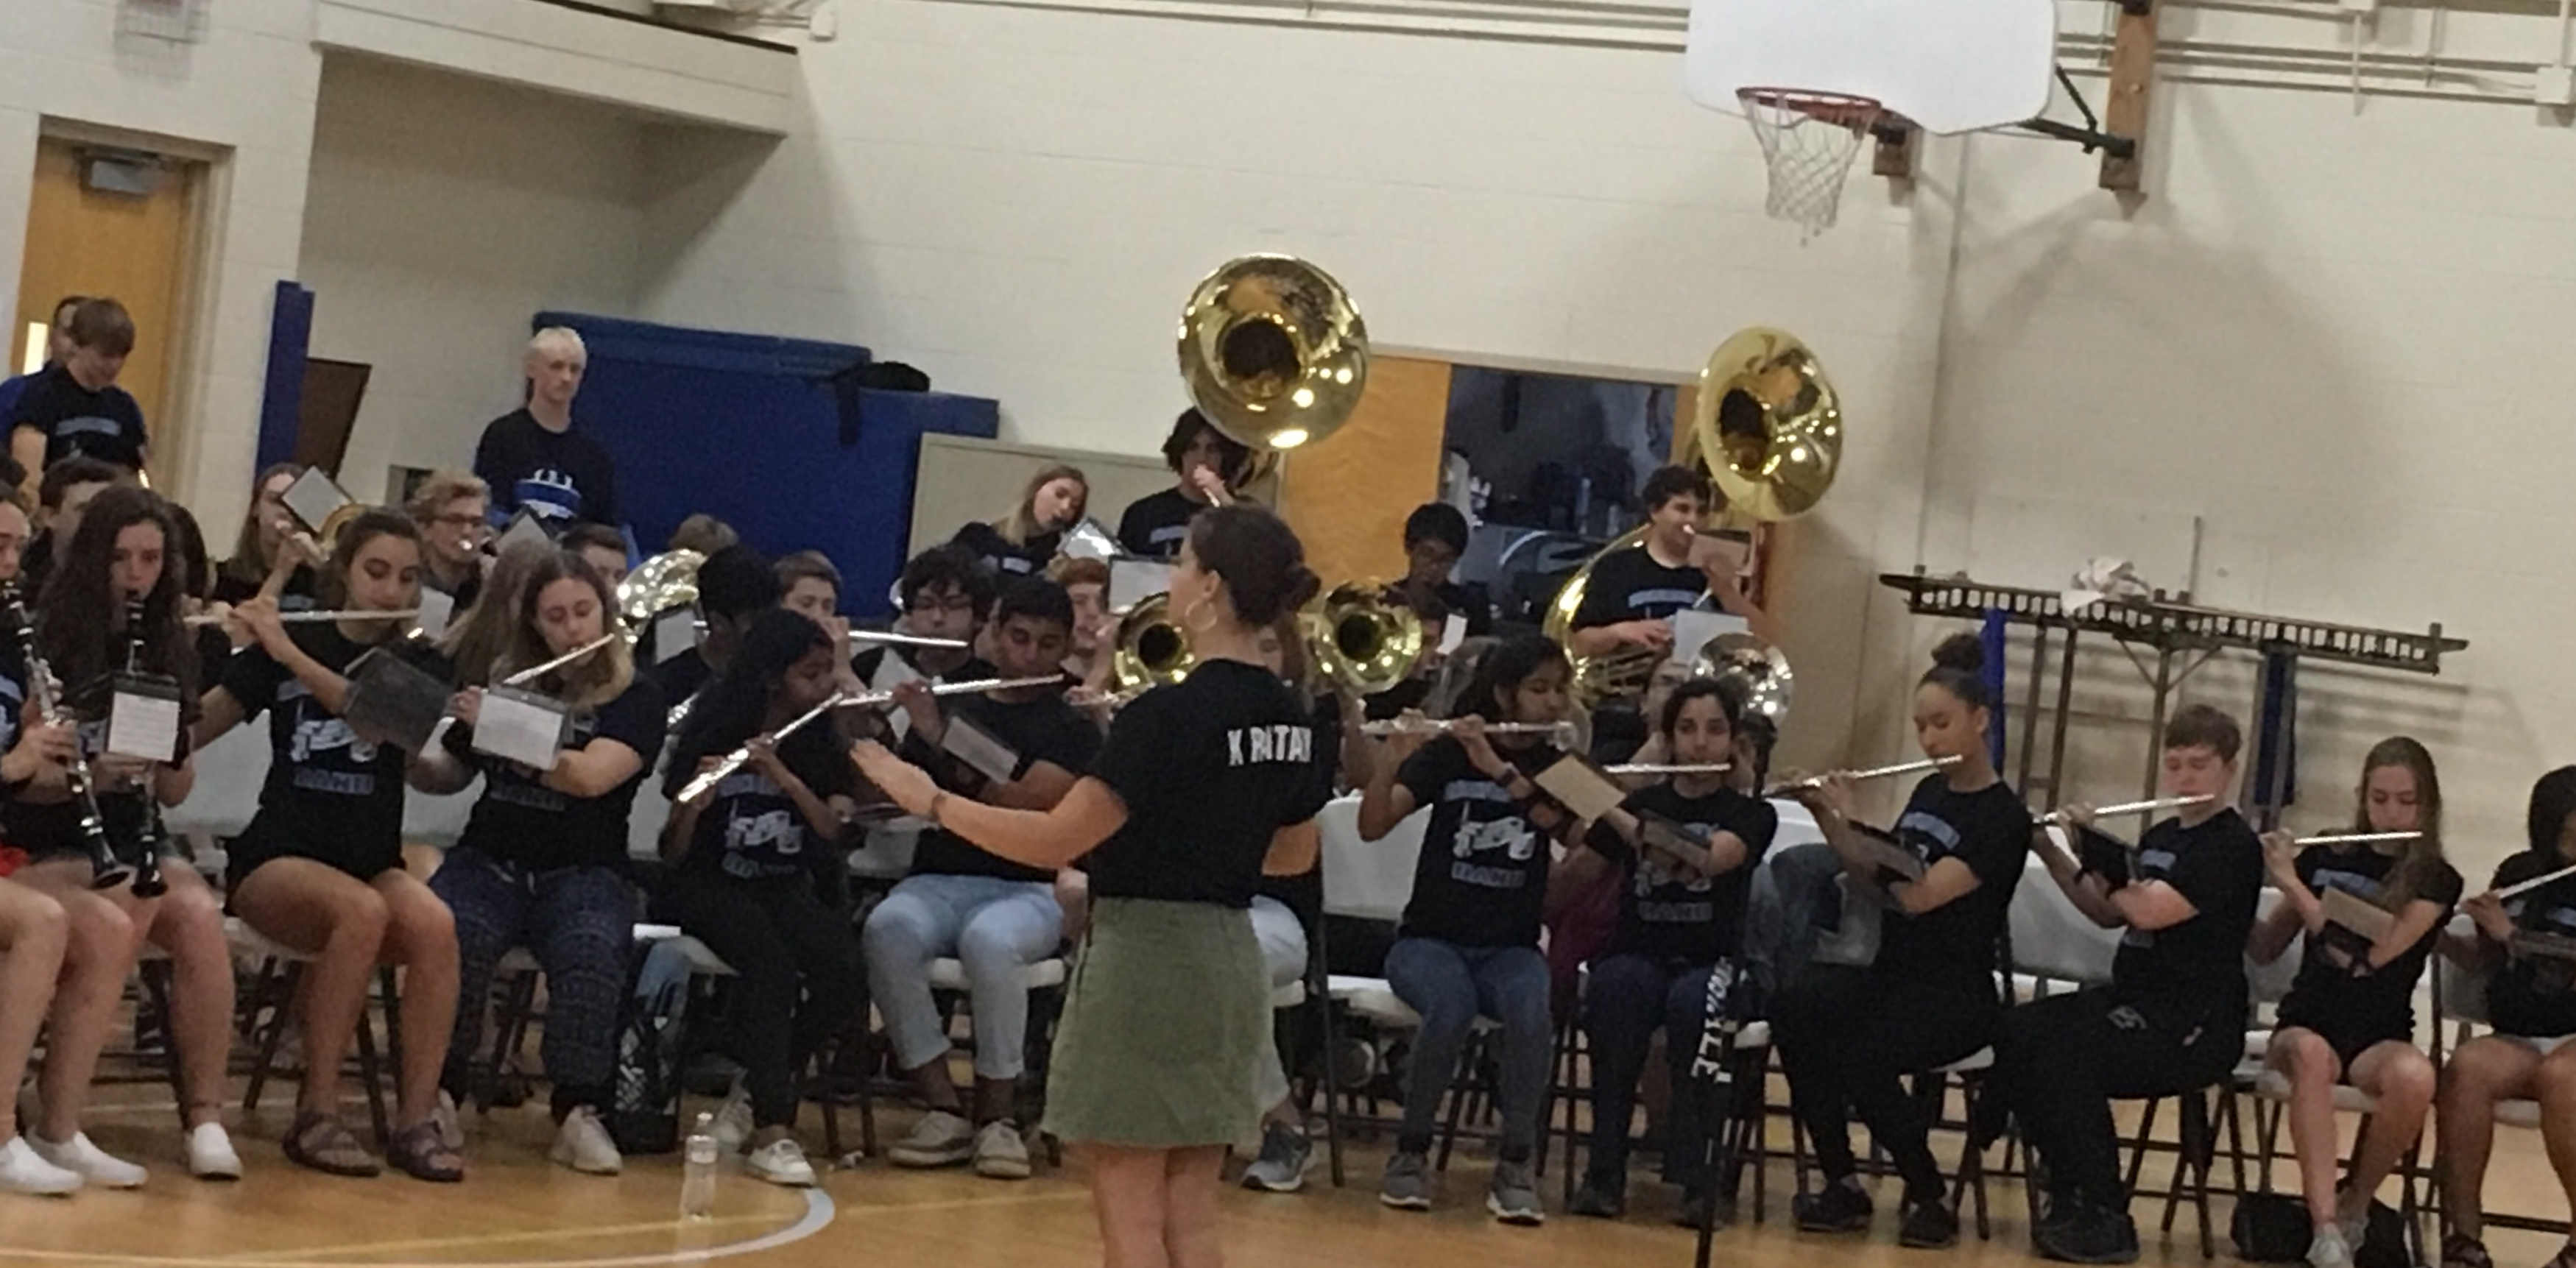 BC Band performs at Swanson! | News Details